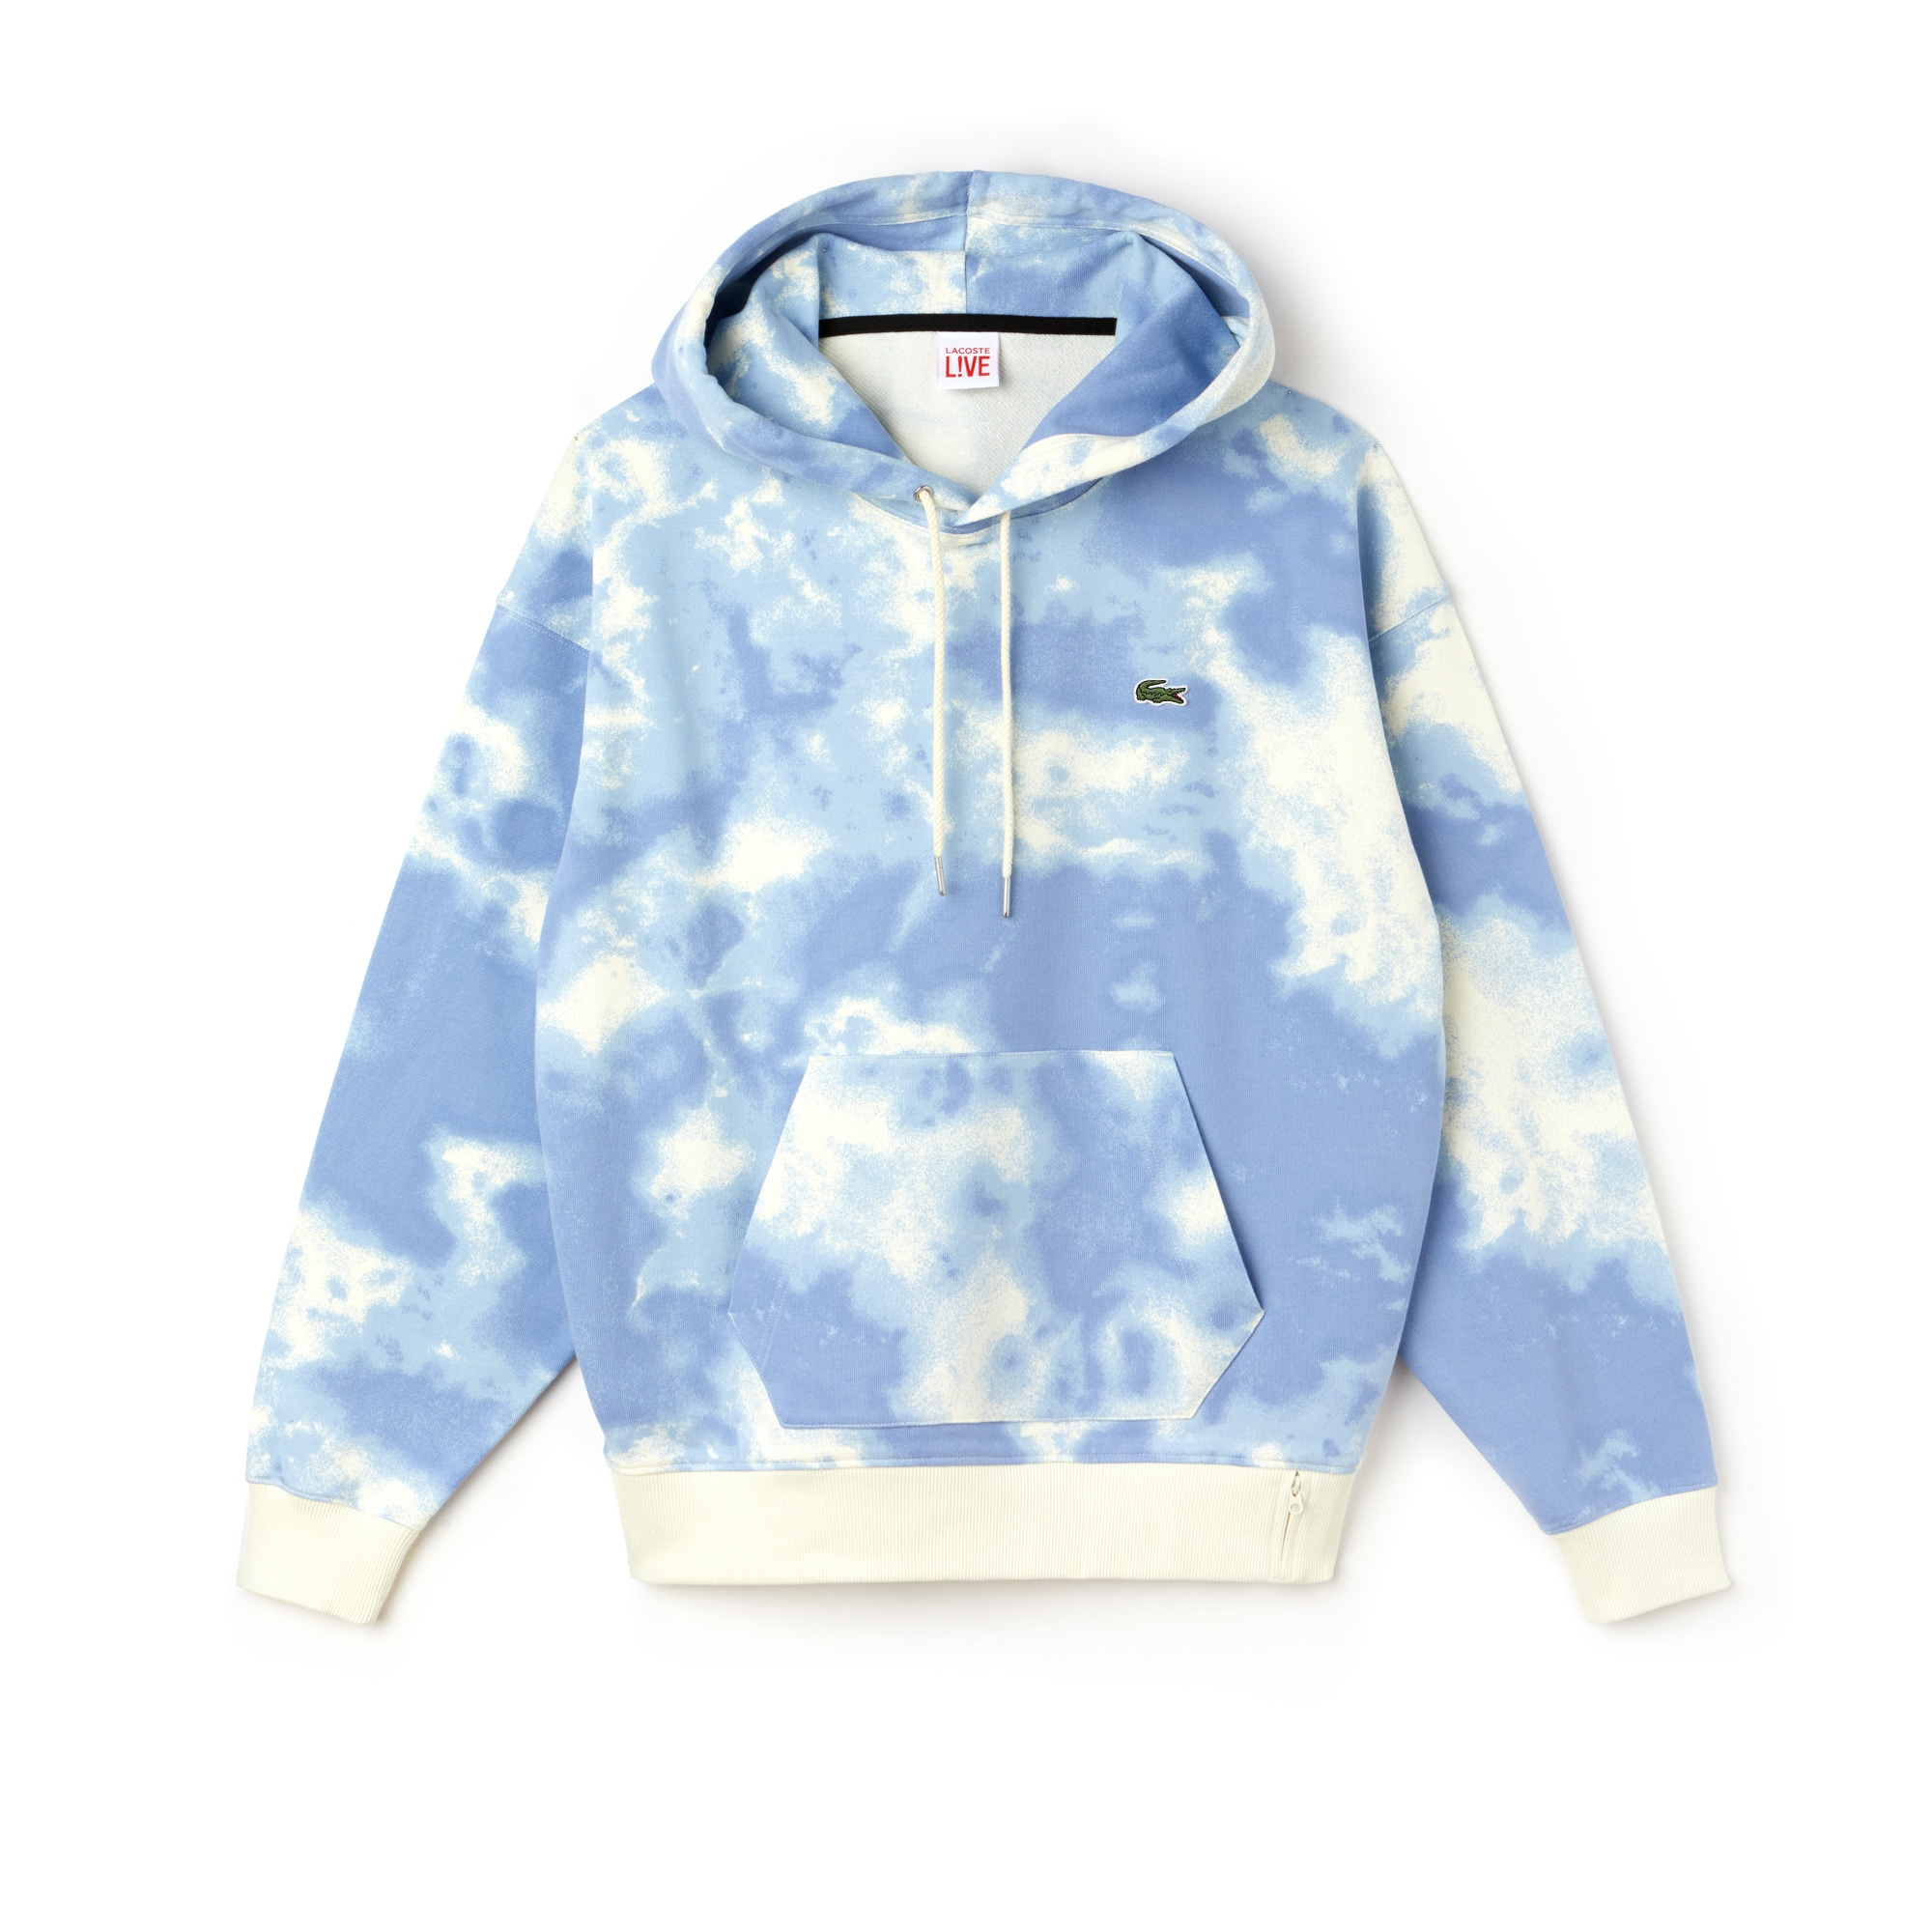 Men's Lacoste LIVE Hooded Cloud Print Fleece Sweatshirt